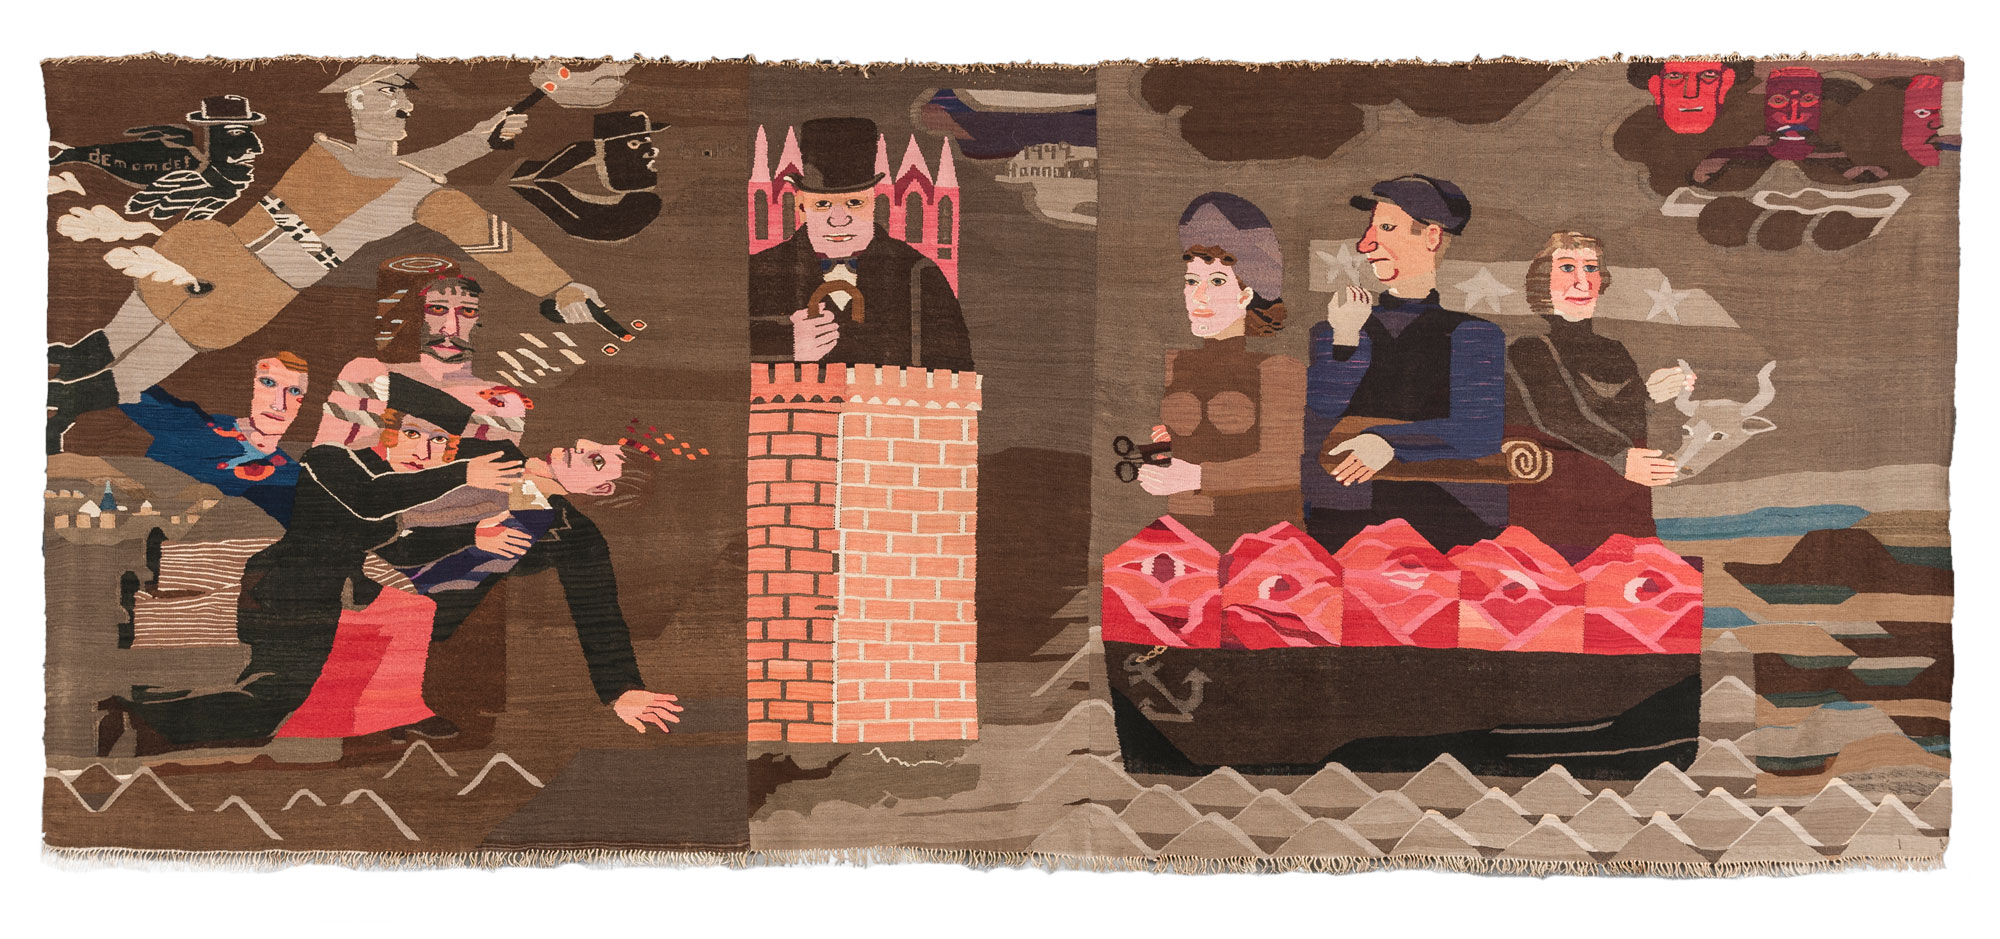 Hrag Vartanian Why Craft Matters Hannah Ryggen Tapestry